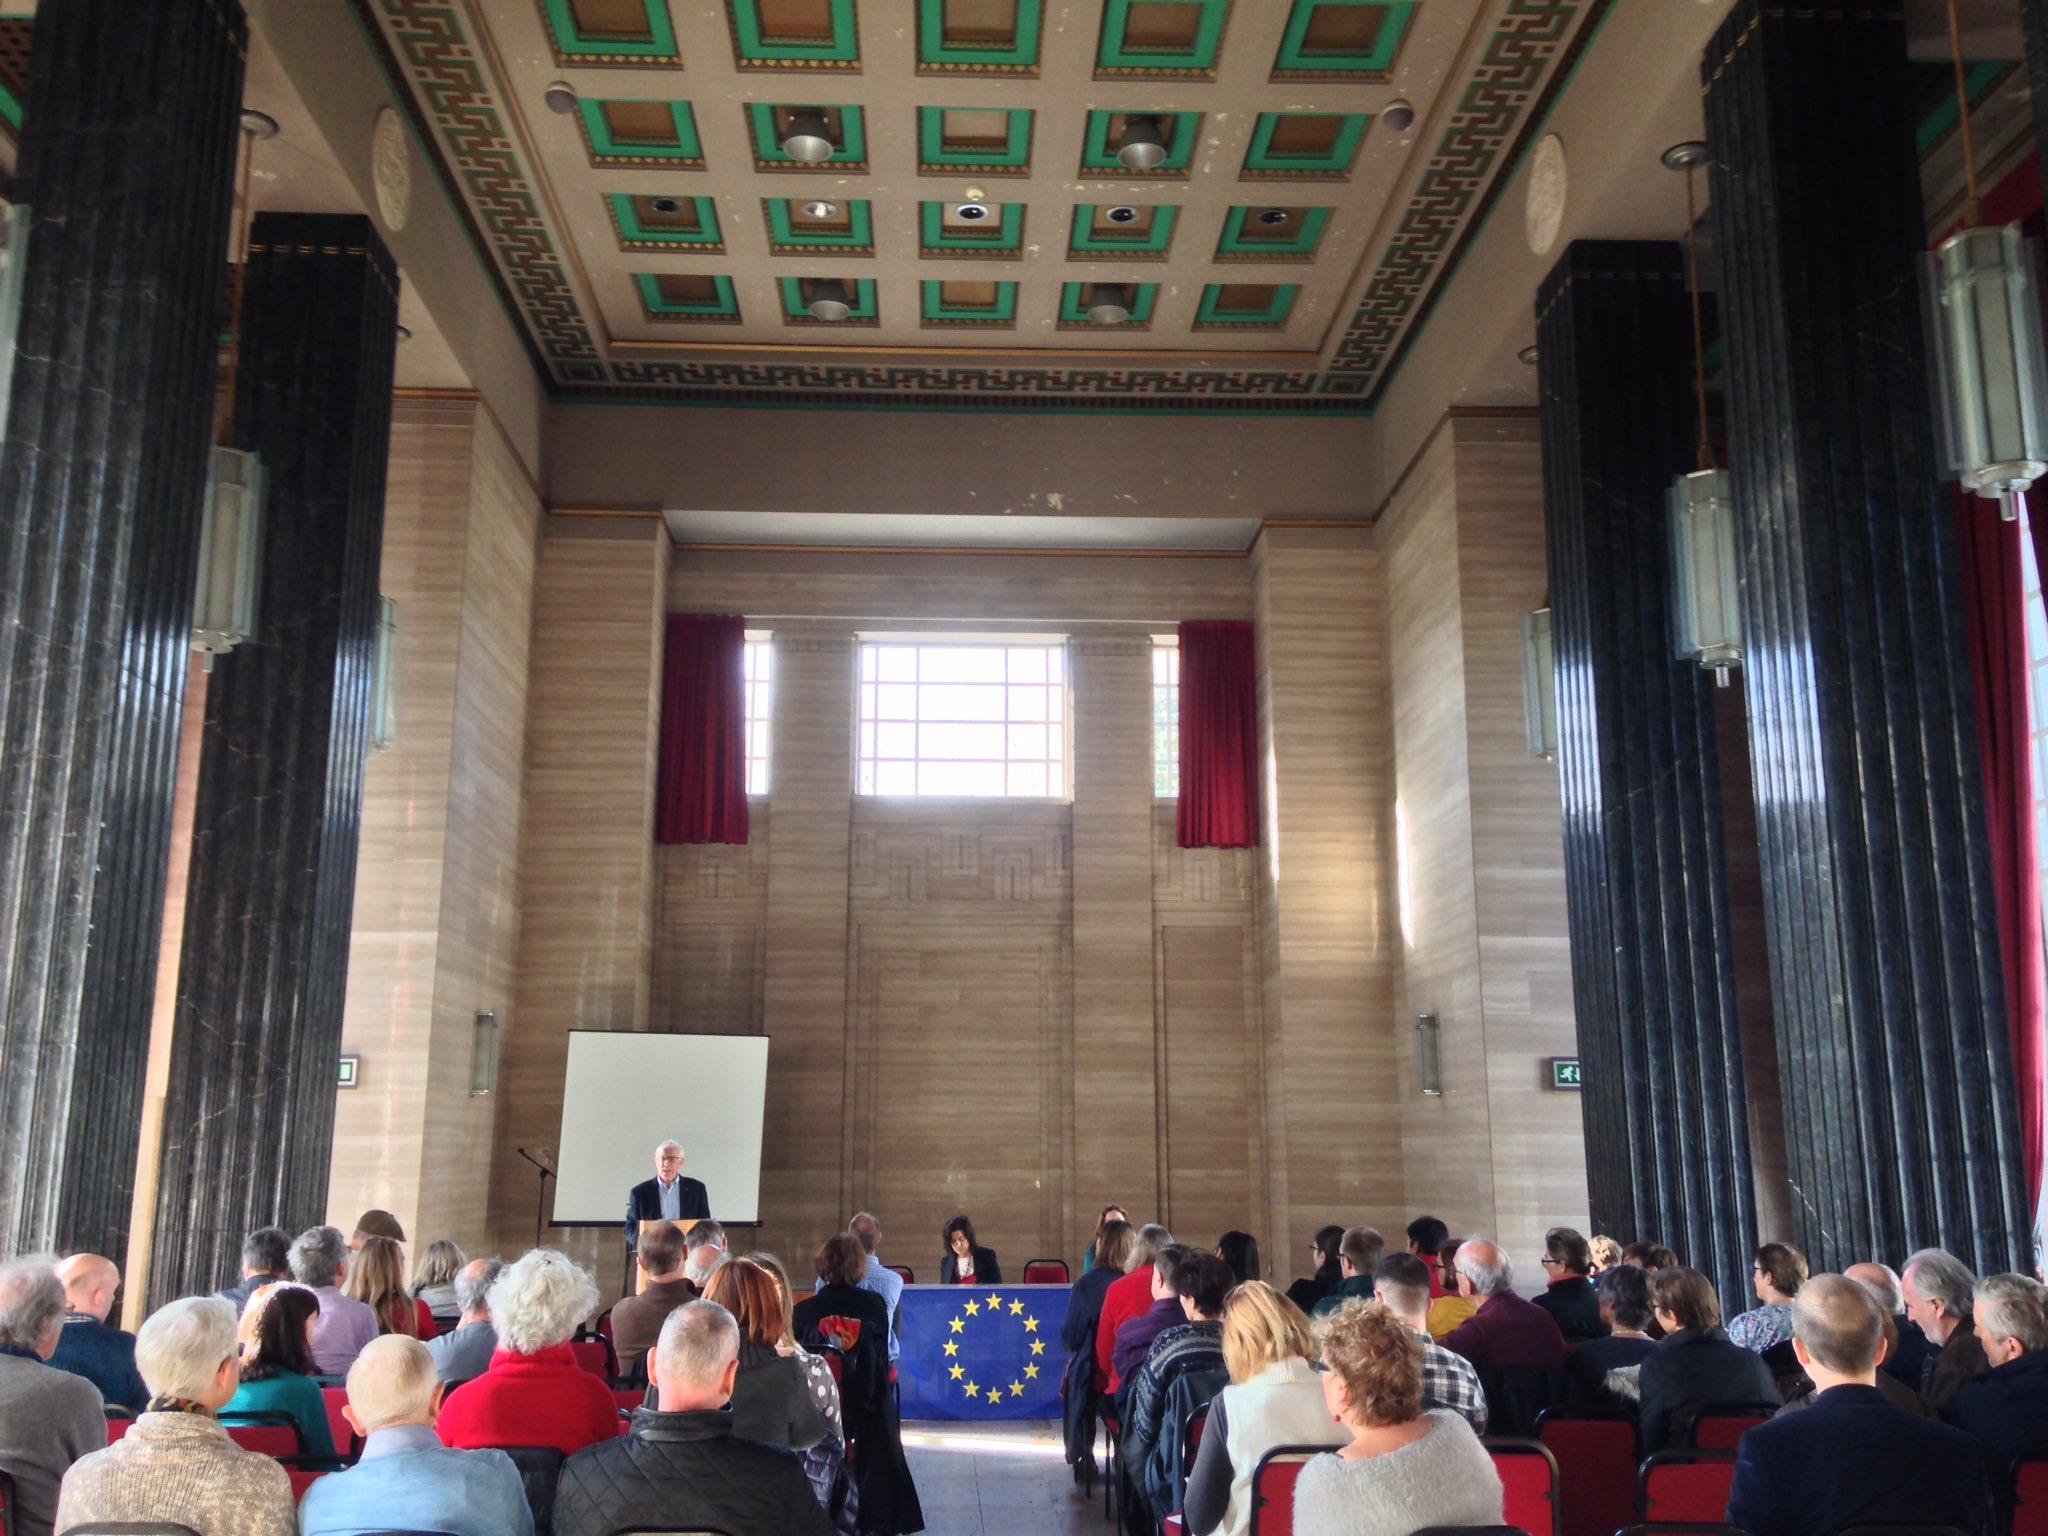 Wales For Europe's first public meeting!